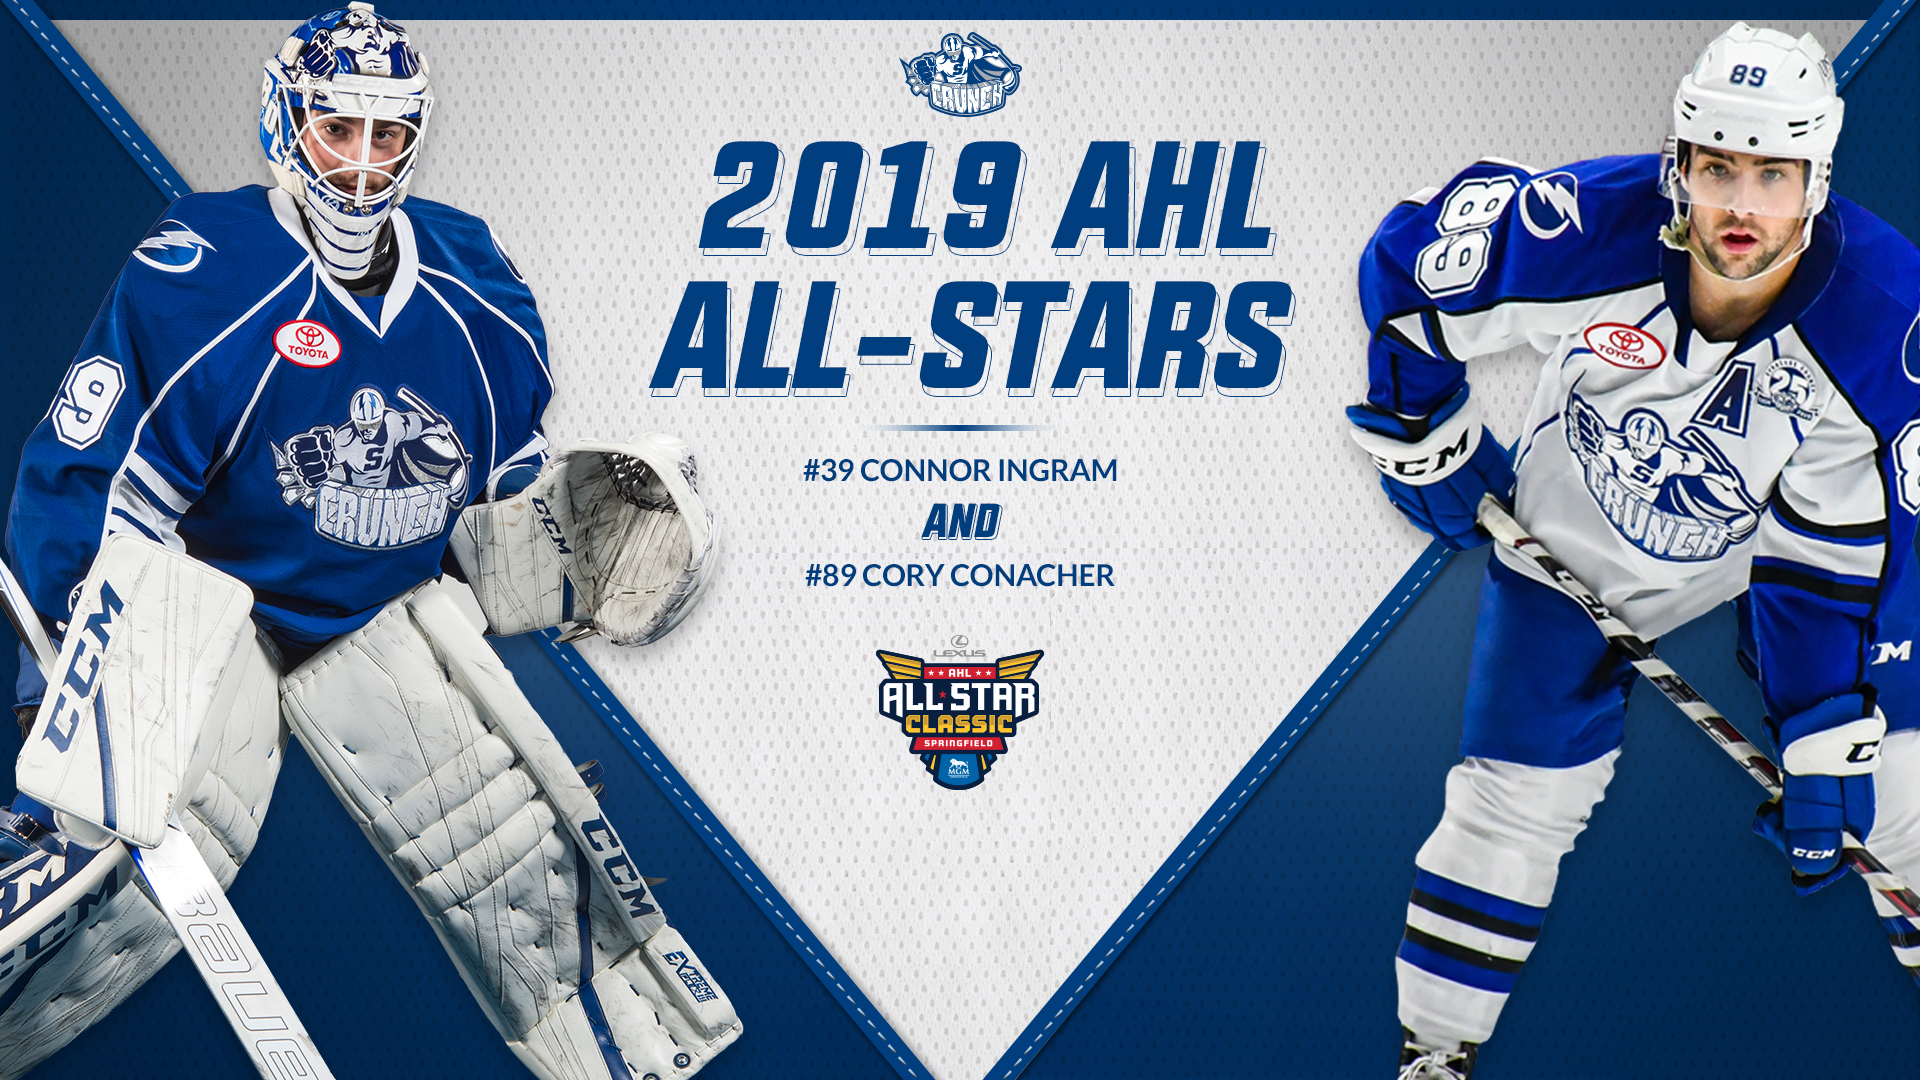 Cory Conacher And Connor Ingram Named 2019 Ahl All Stars Images, Photos, Reviews